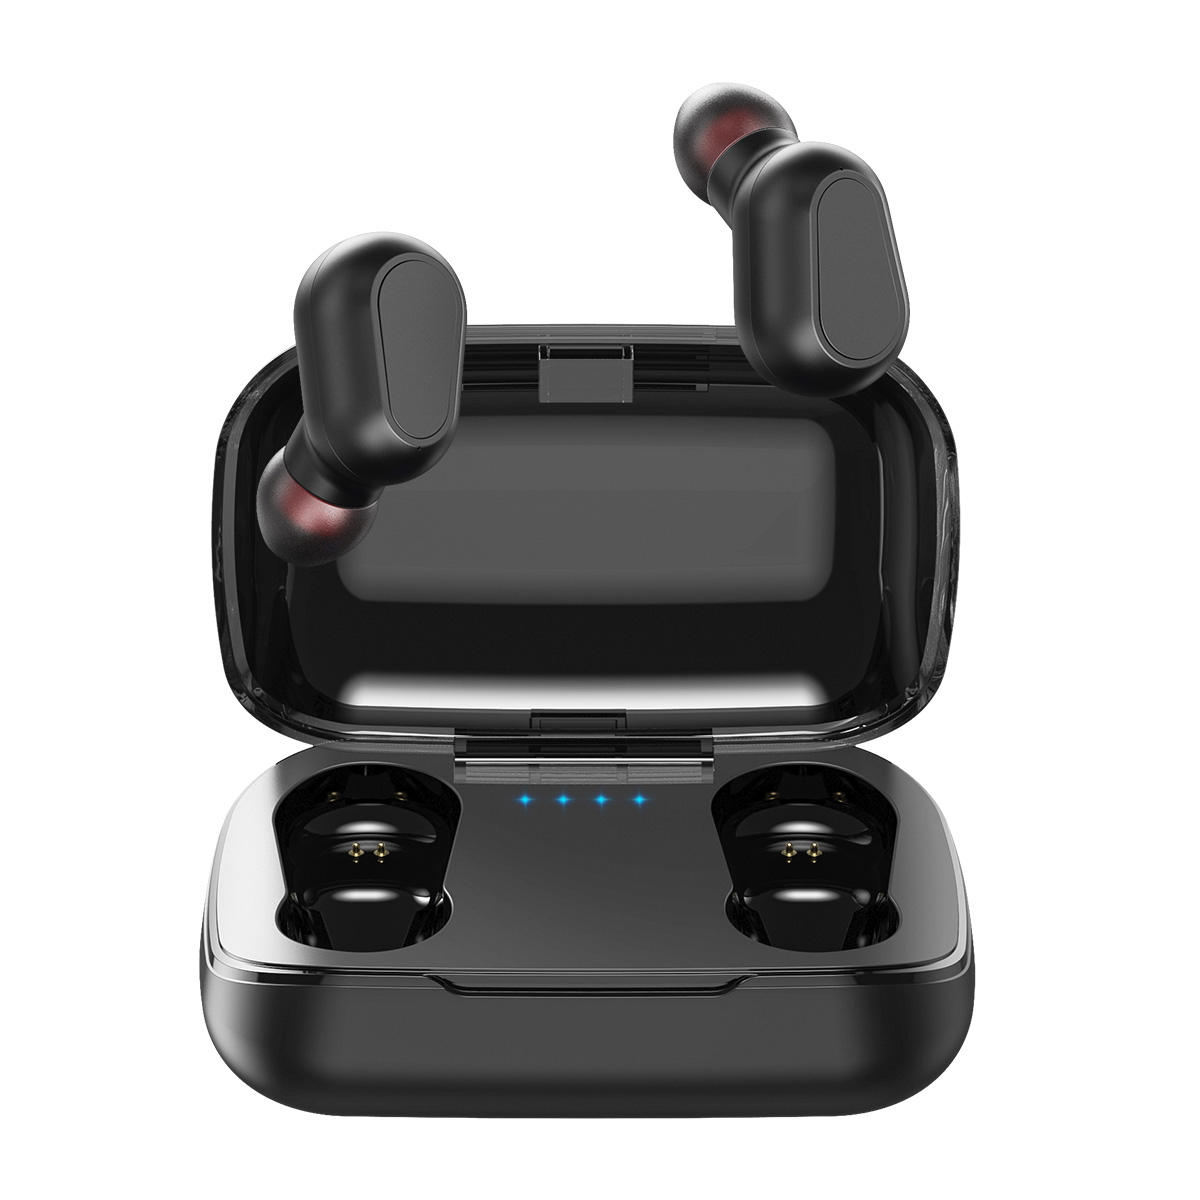 TOPK F22 TWS bluetooth 5.0 True Wireless Earphone LED Display Button Control Sports Headphones With Mic for Xiaomi Huawei